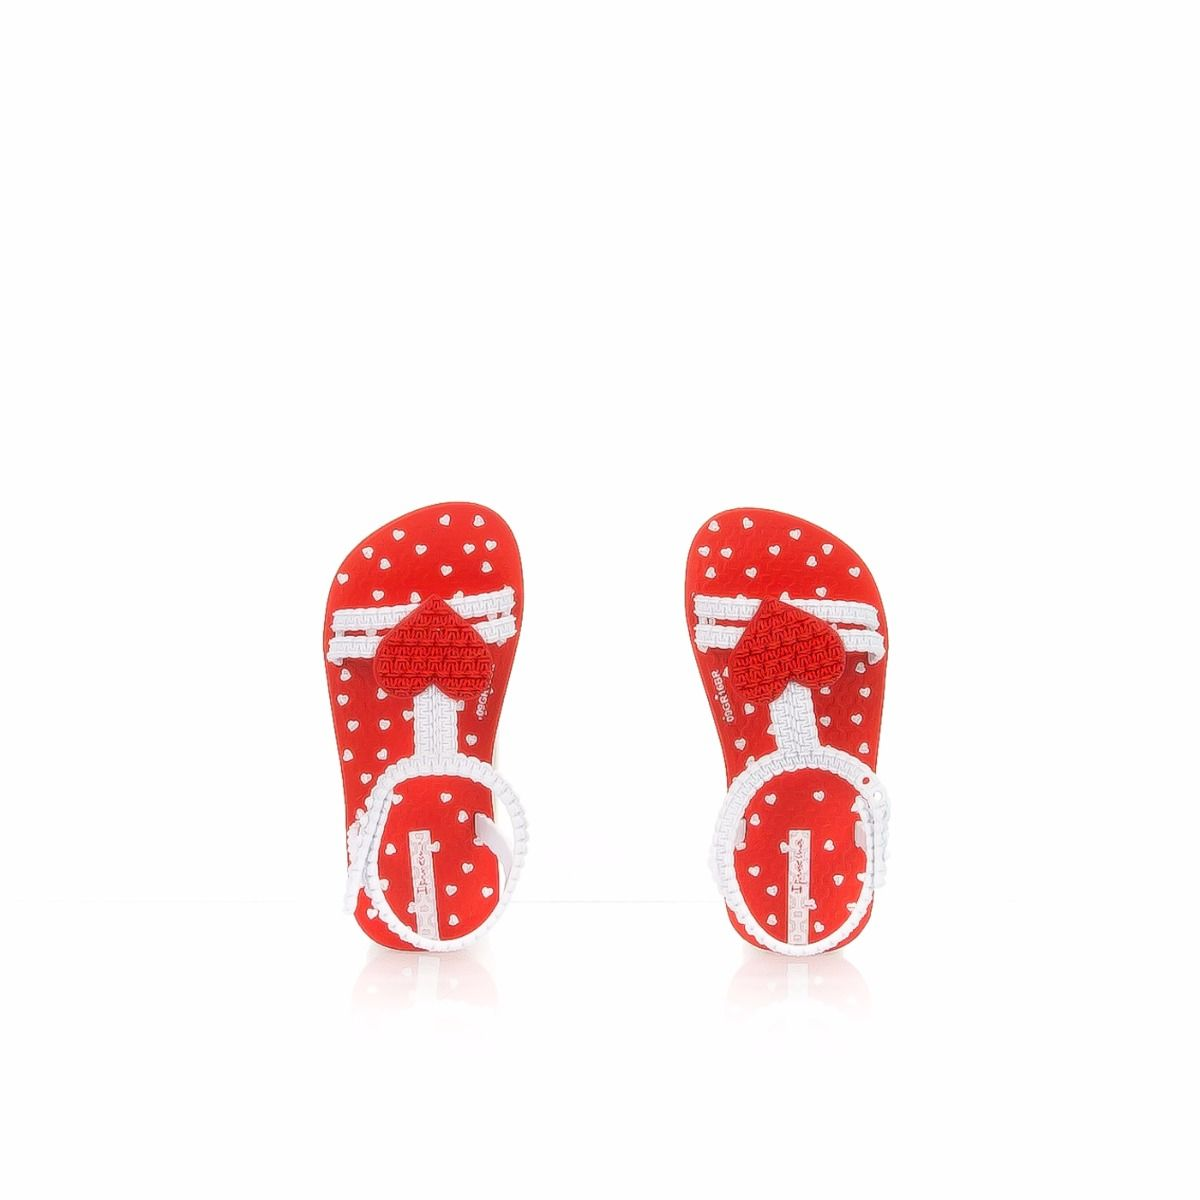 online store 01751 32c54 IPANEMA SANDALO BAMBINA 81977 FIRST BABY ROSSO